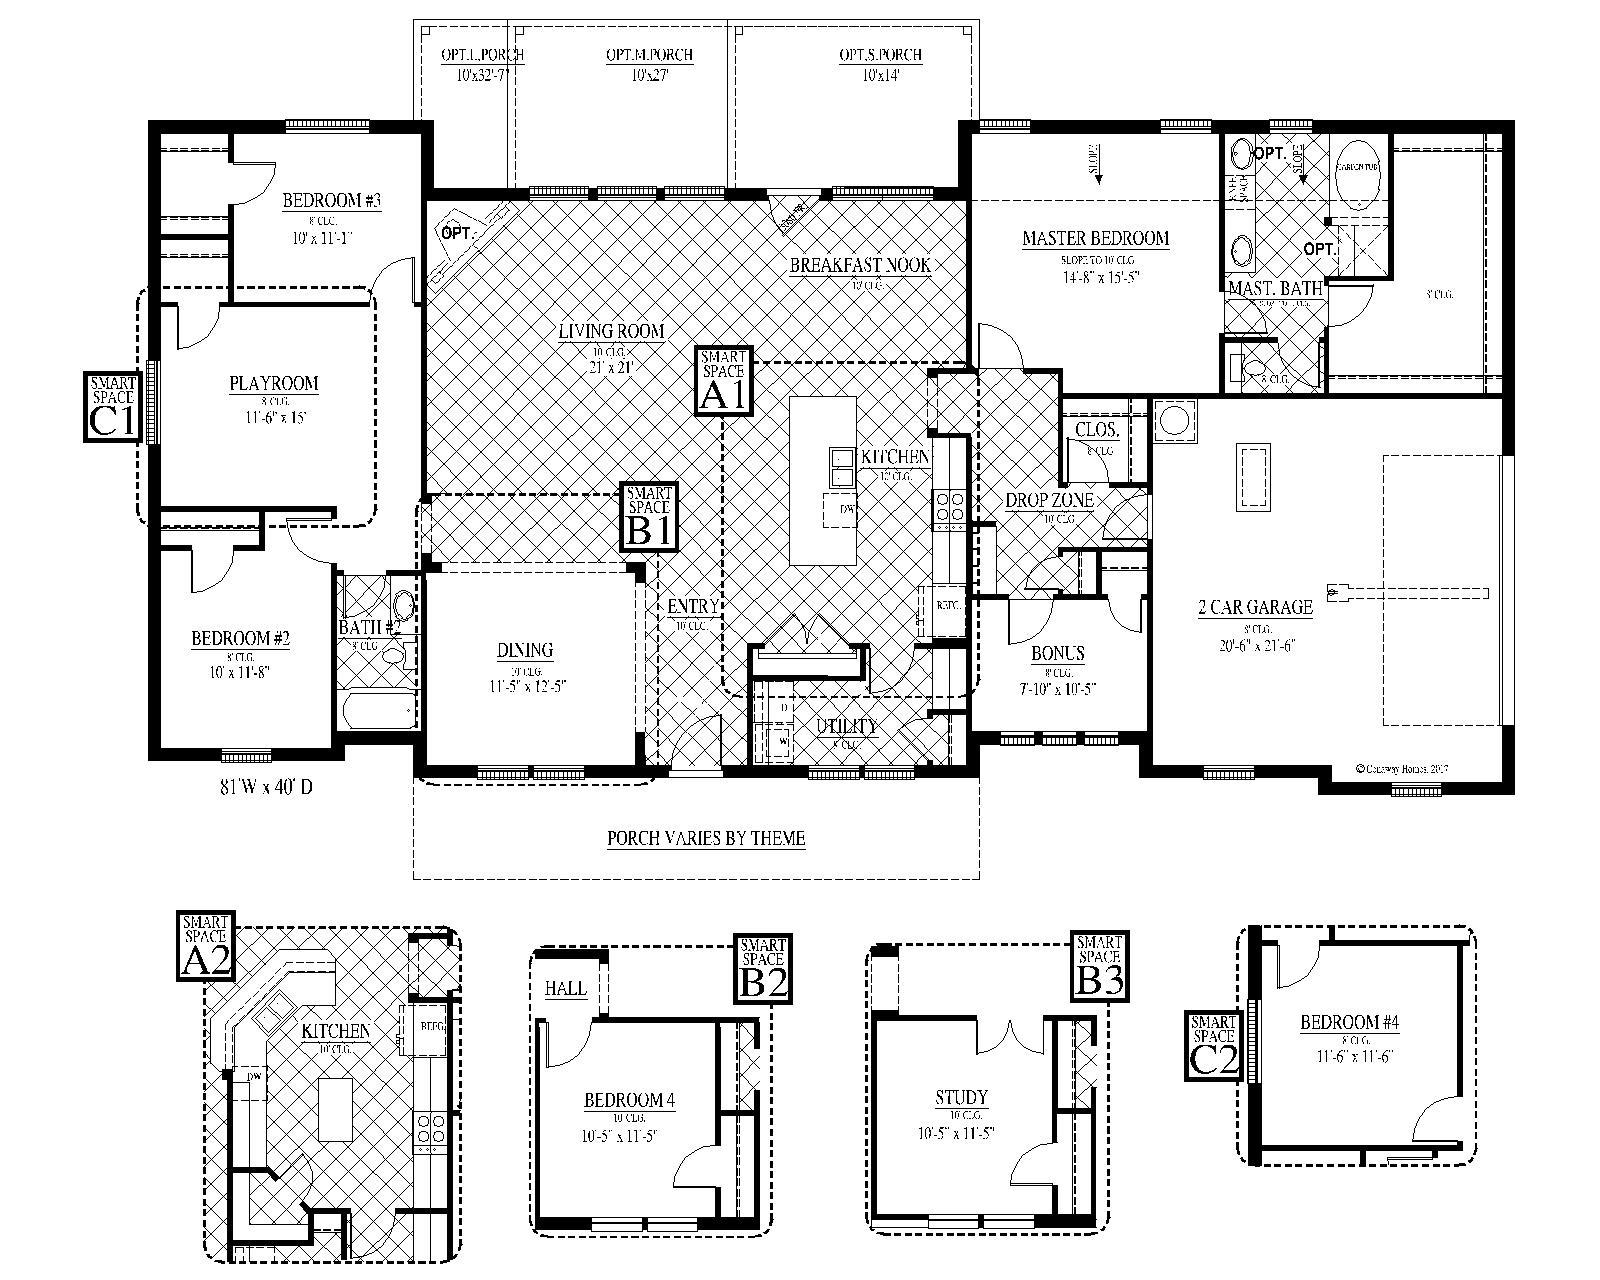 [FLEX PLAN] Hillsboro-II Floorplan